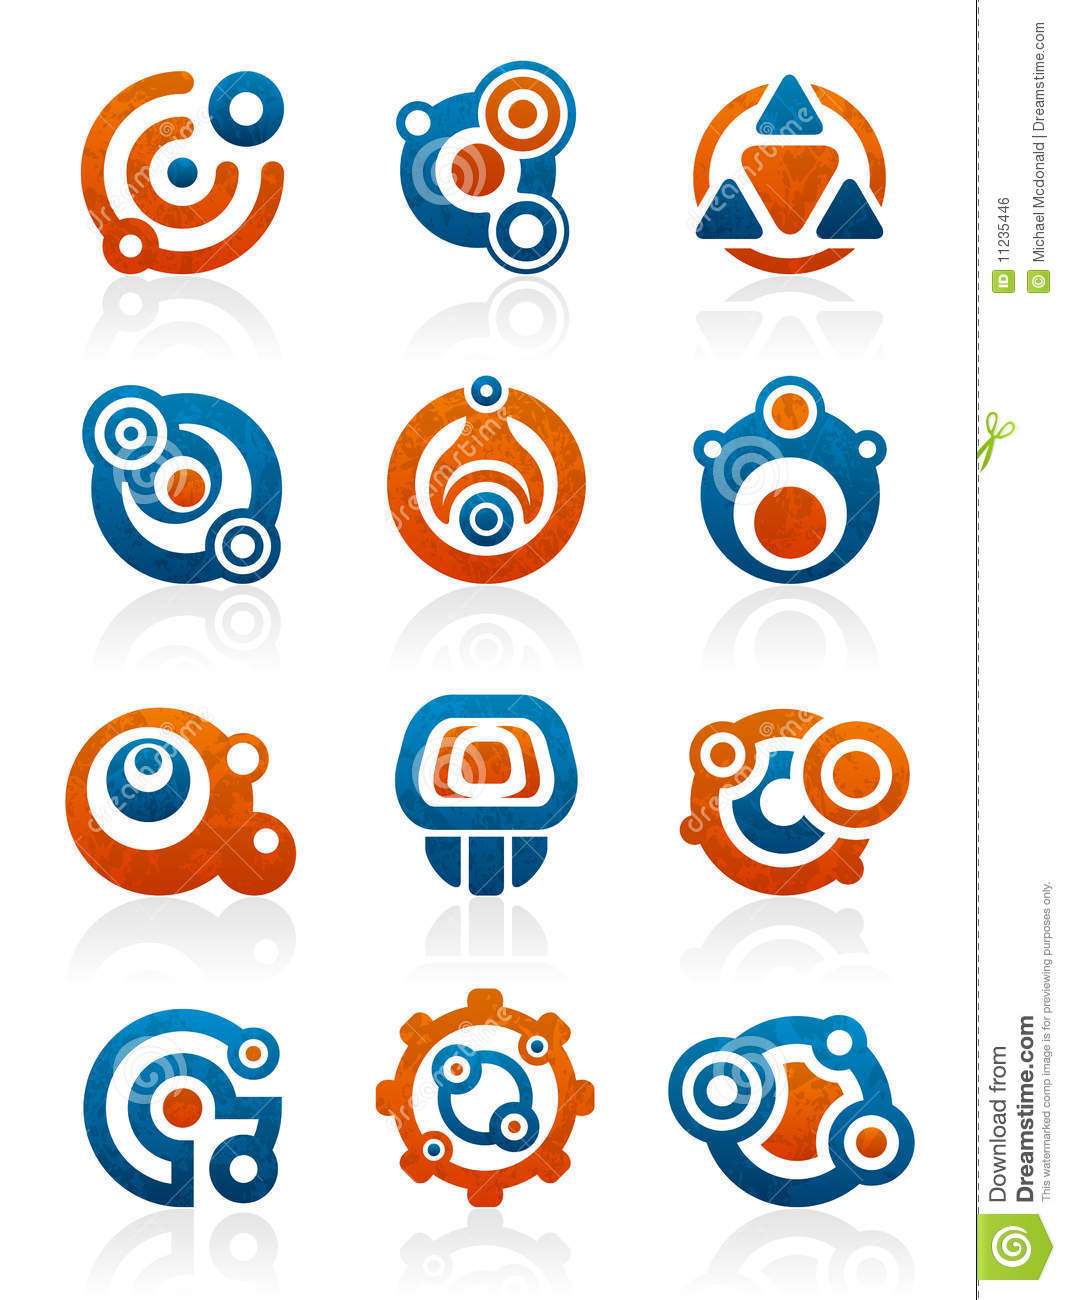 Abstract tribal icons and symbols